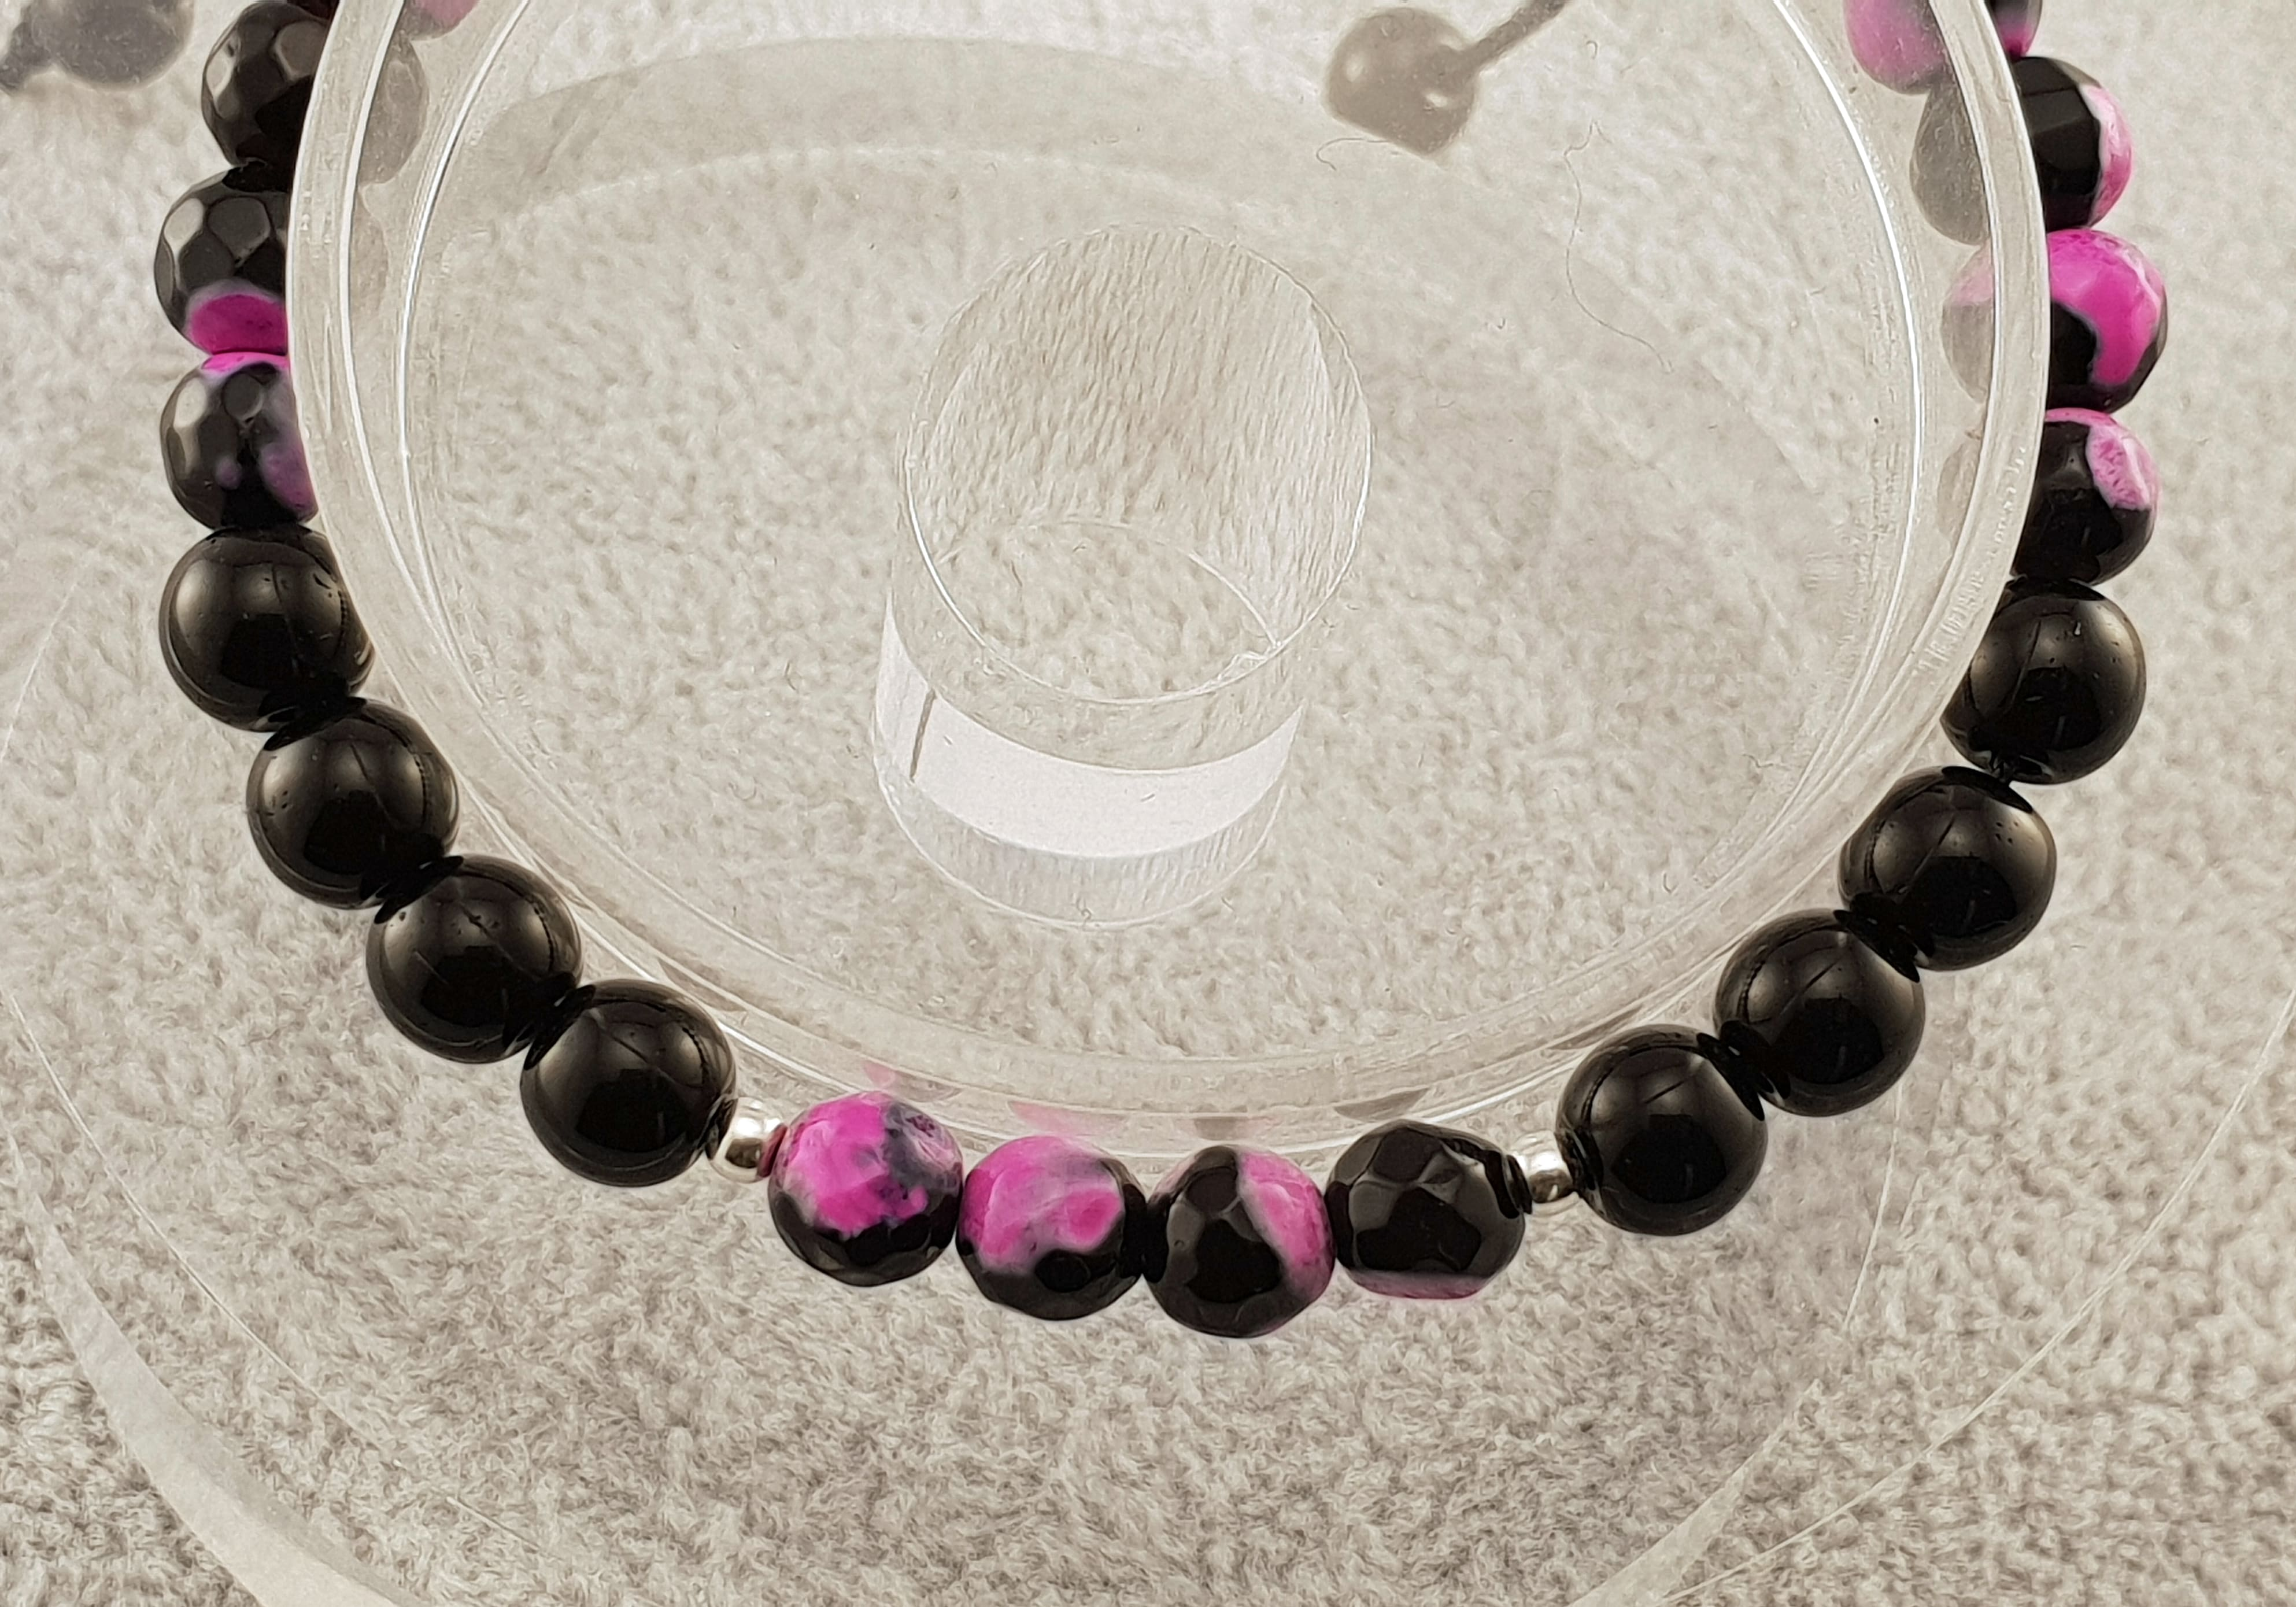 Agate beads - Black and Matte Violet - By Janine Jewellery